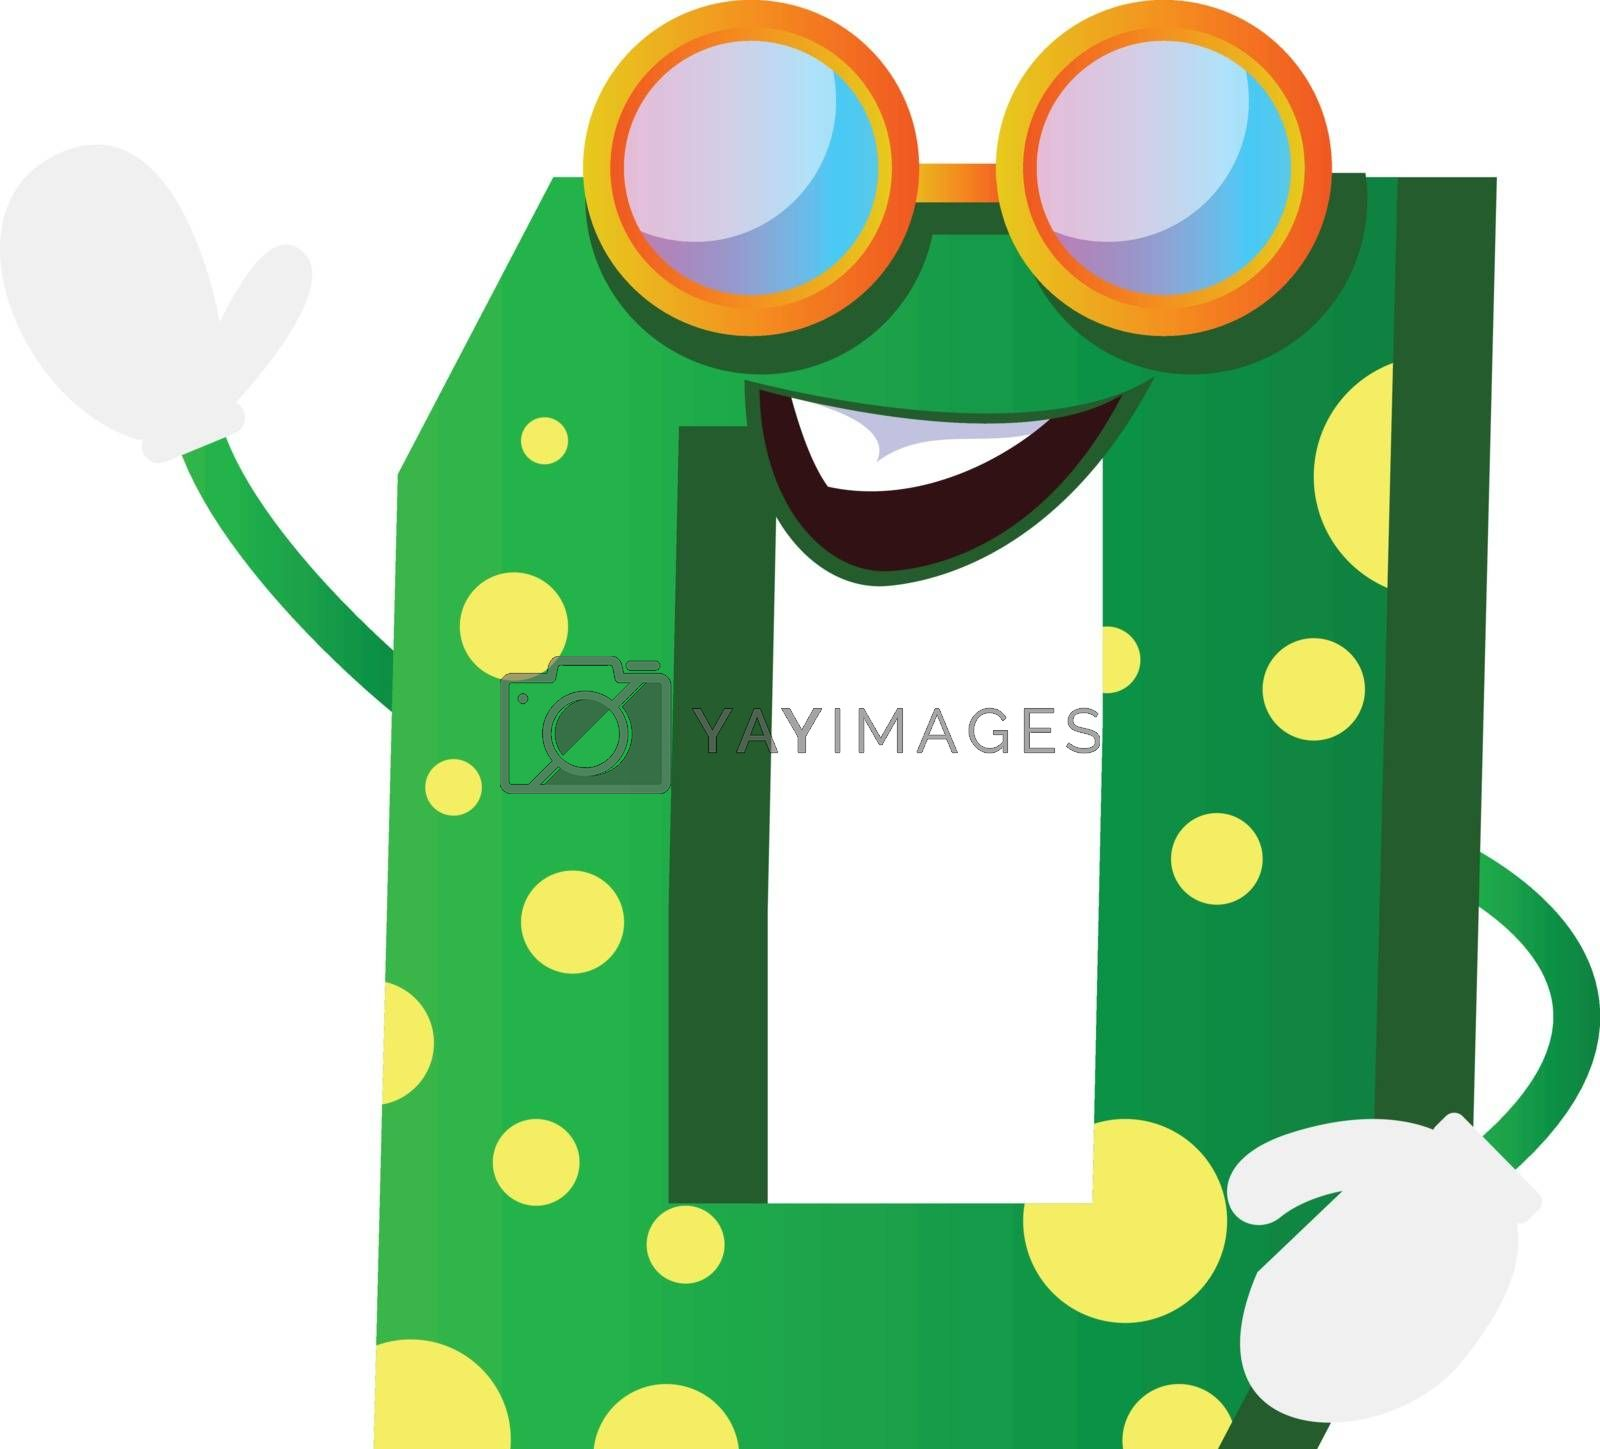 Royalty free image of Green monster in number zero shape with glasses illustration vec by Morphart